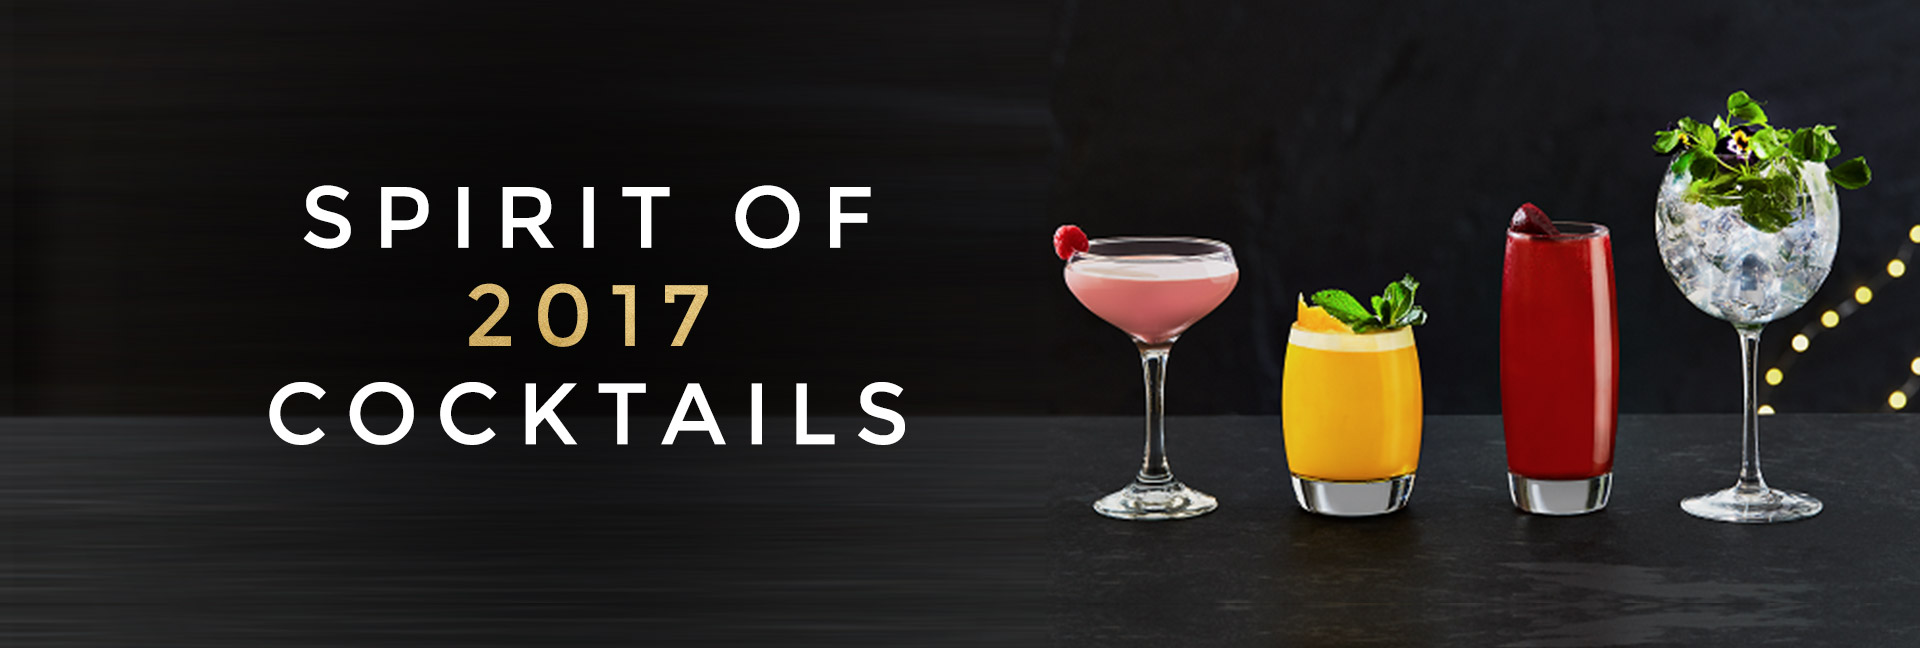 Spirit of 2017 cocktails at All Bar One Houndsditch